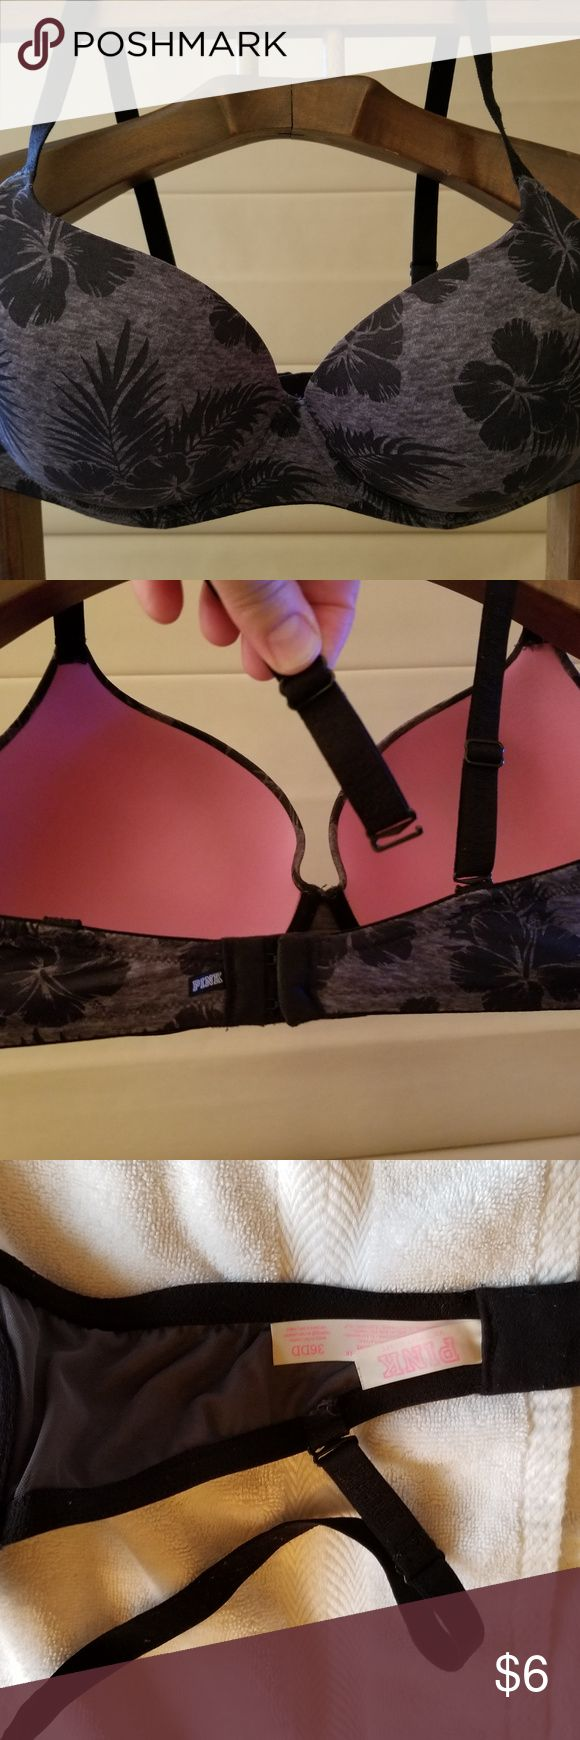 "Victoria's Secret PINK 36DD bra heather gray/black Victoria's Secret PINK size 36DD ""wear everywhere lightly lined"" bra. Heather gray and black. It has under wires that are NOT poking through anywhere. PINK Victoria's Secret Intimates & Sleepwear Bras"